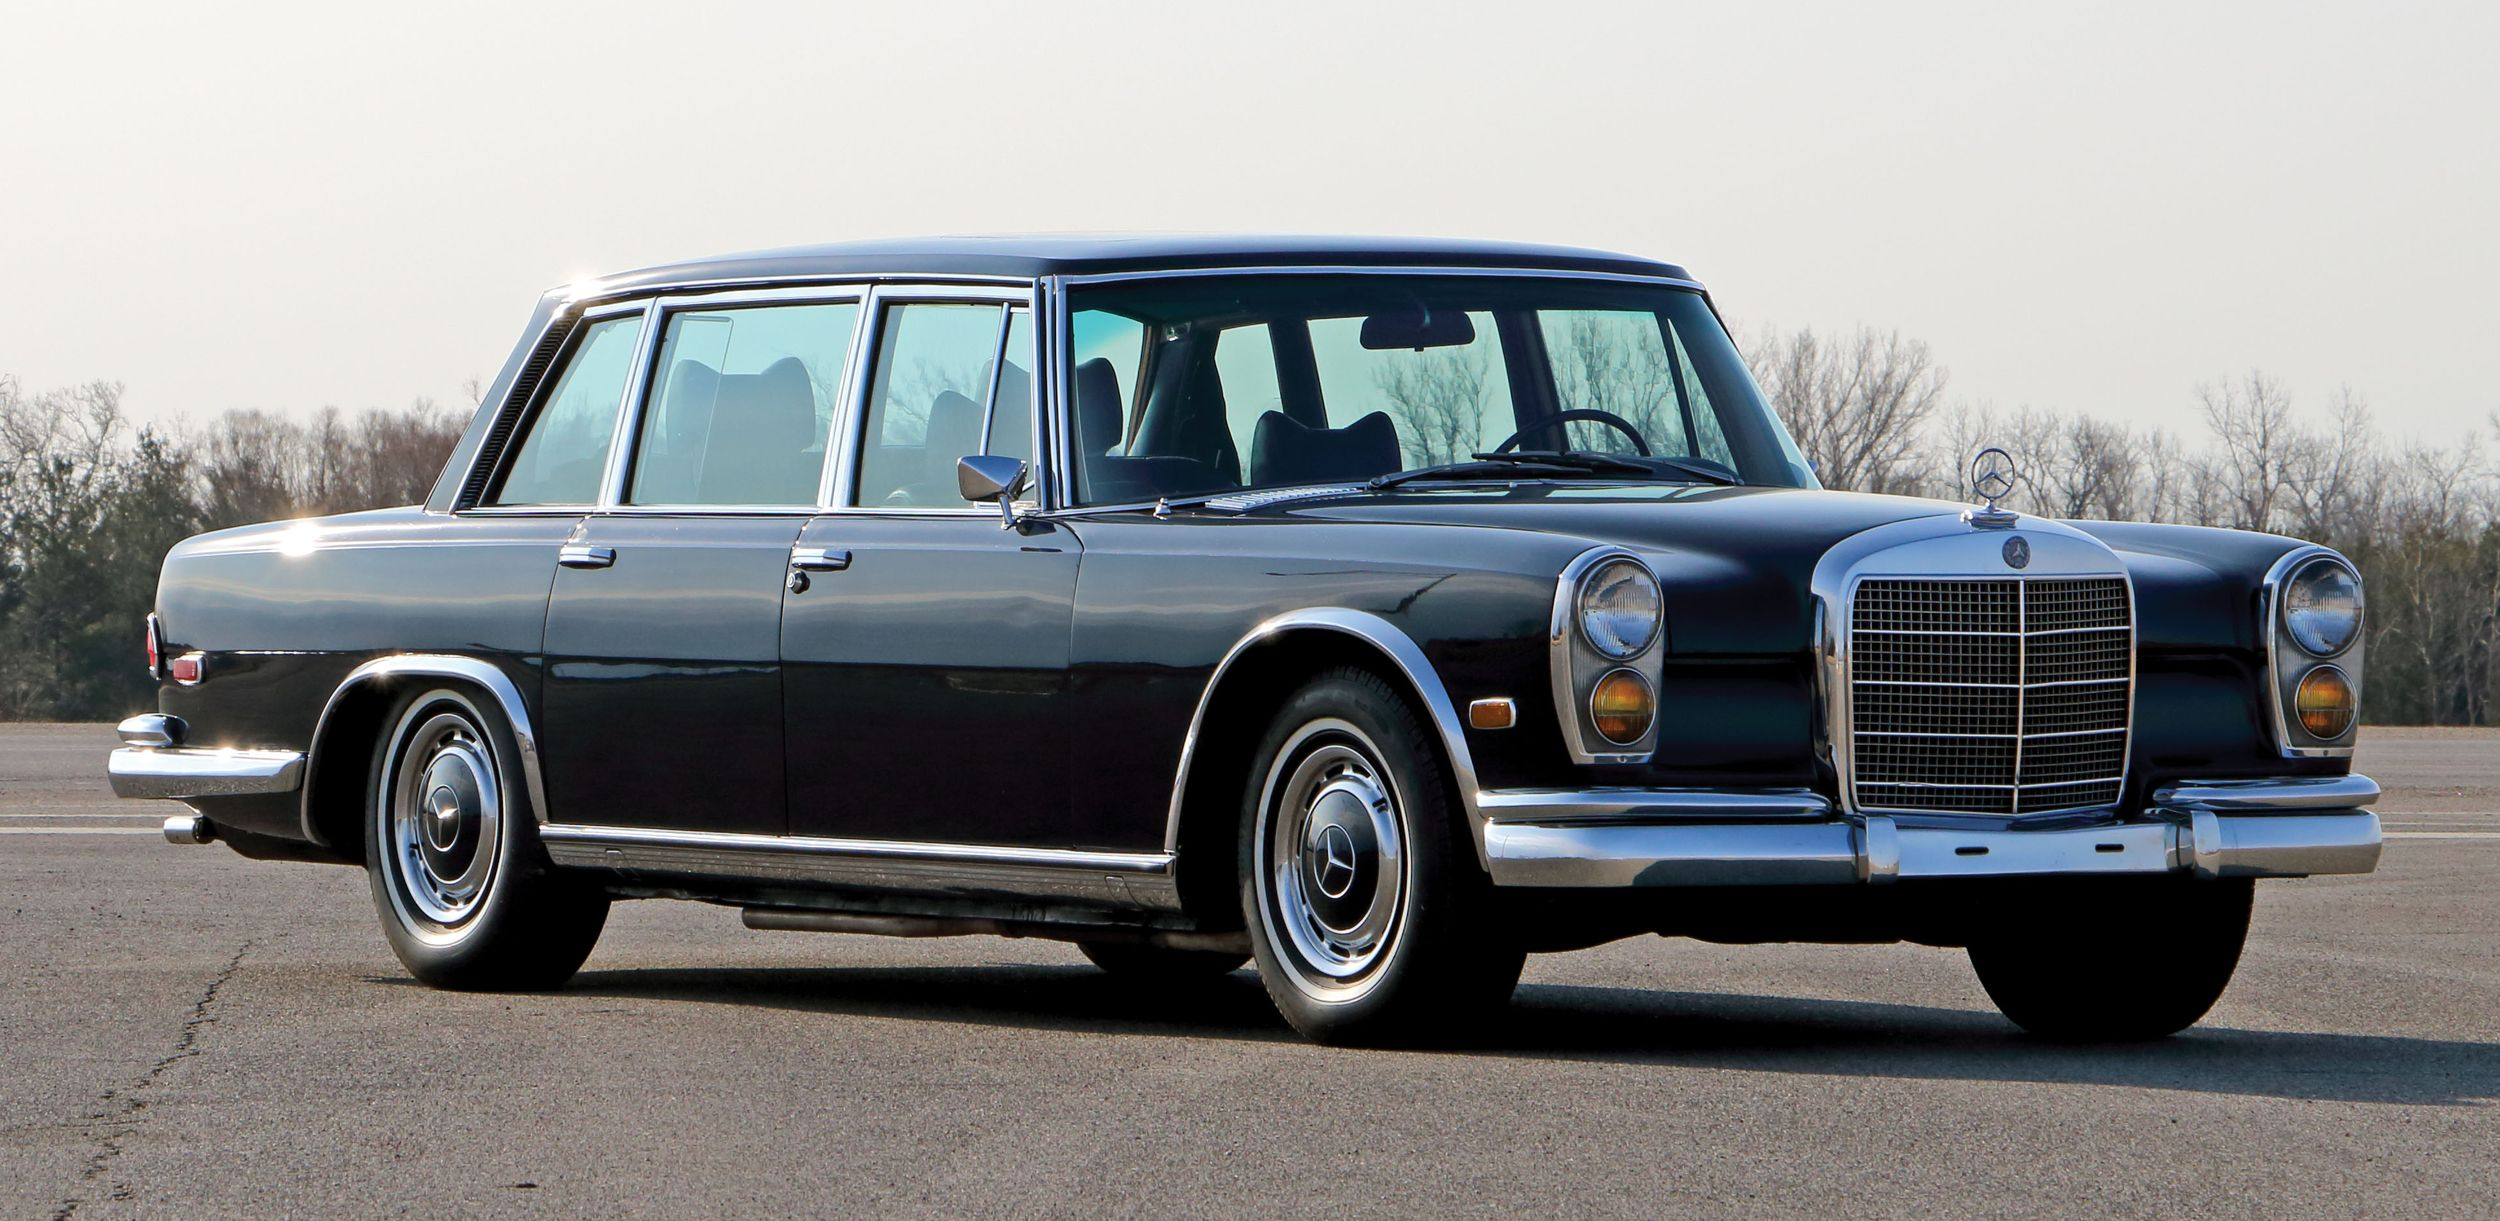 1969 mercedes benz 600 photos informations articles. Black Bedroom Furniture Sets. Home Design Ideas